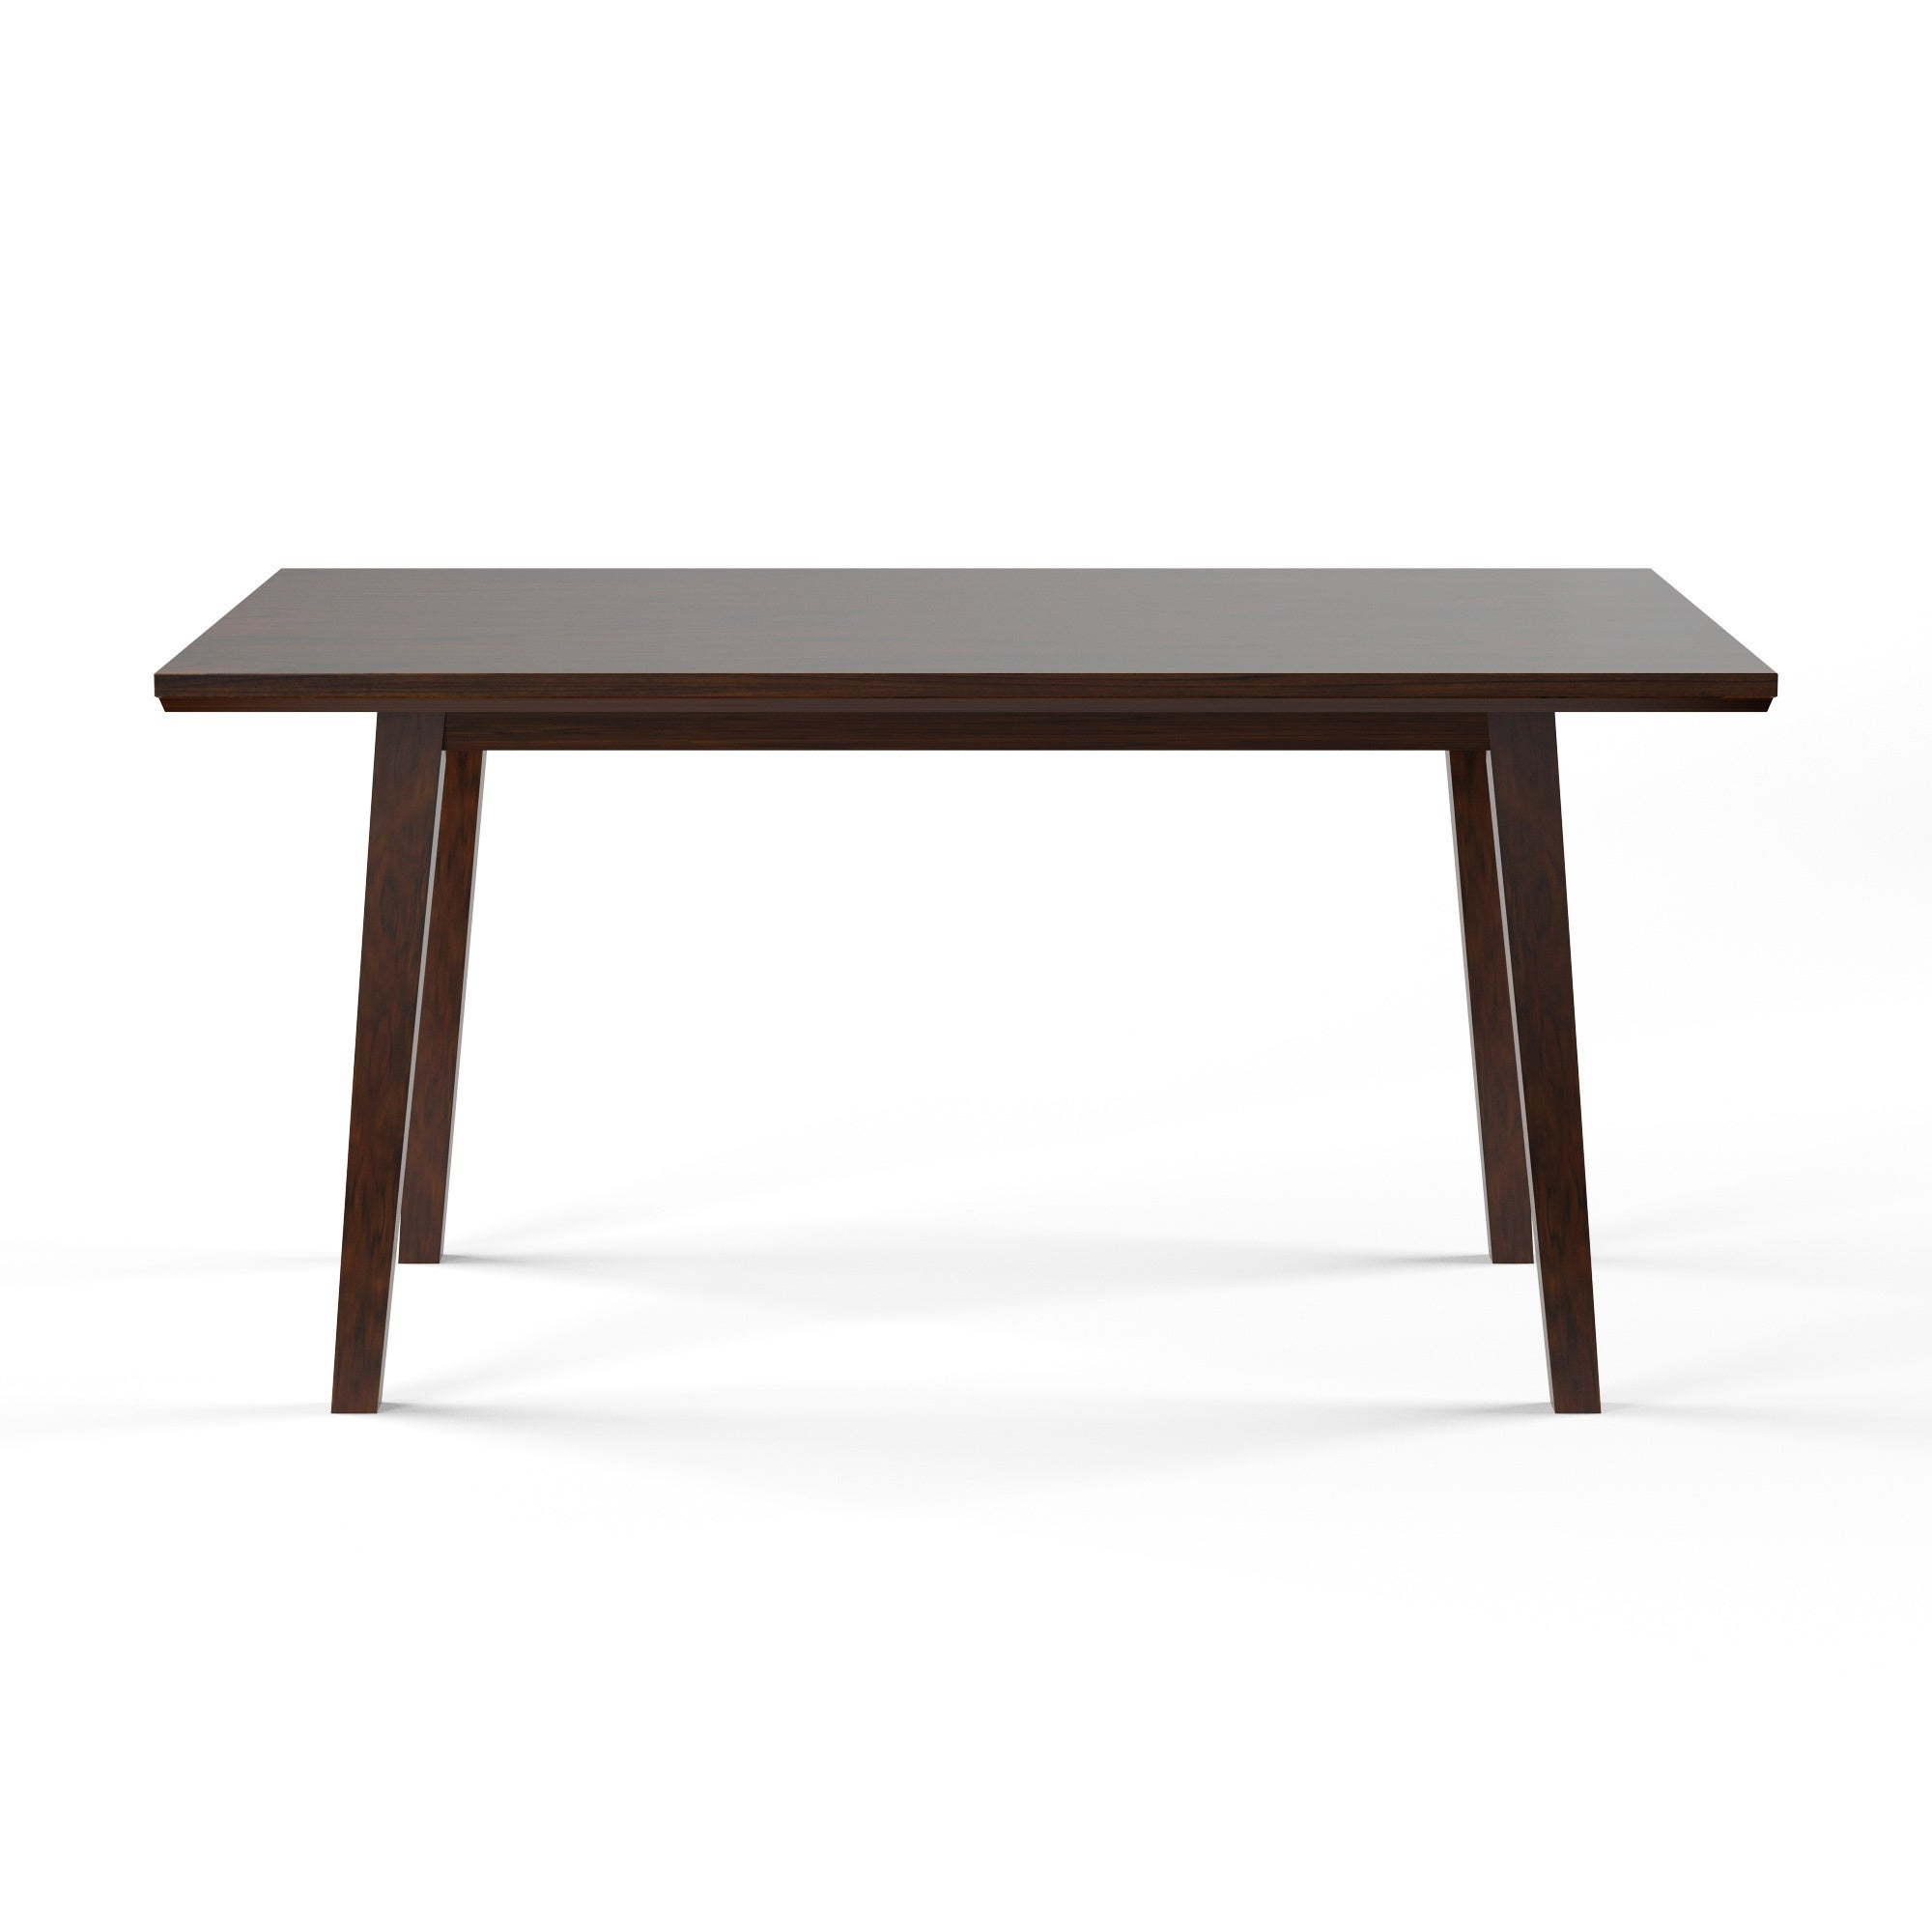 Transitional 4 Seating Double Drop Leaf Casual Dining Tables Inside Fashionable Furniture Of America Yria Transitional Walnut 60 Inch Dining Table (View 19 of 25)